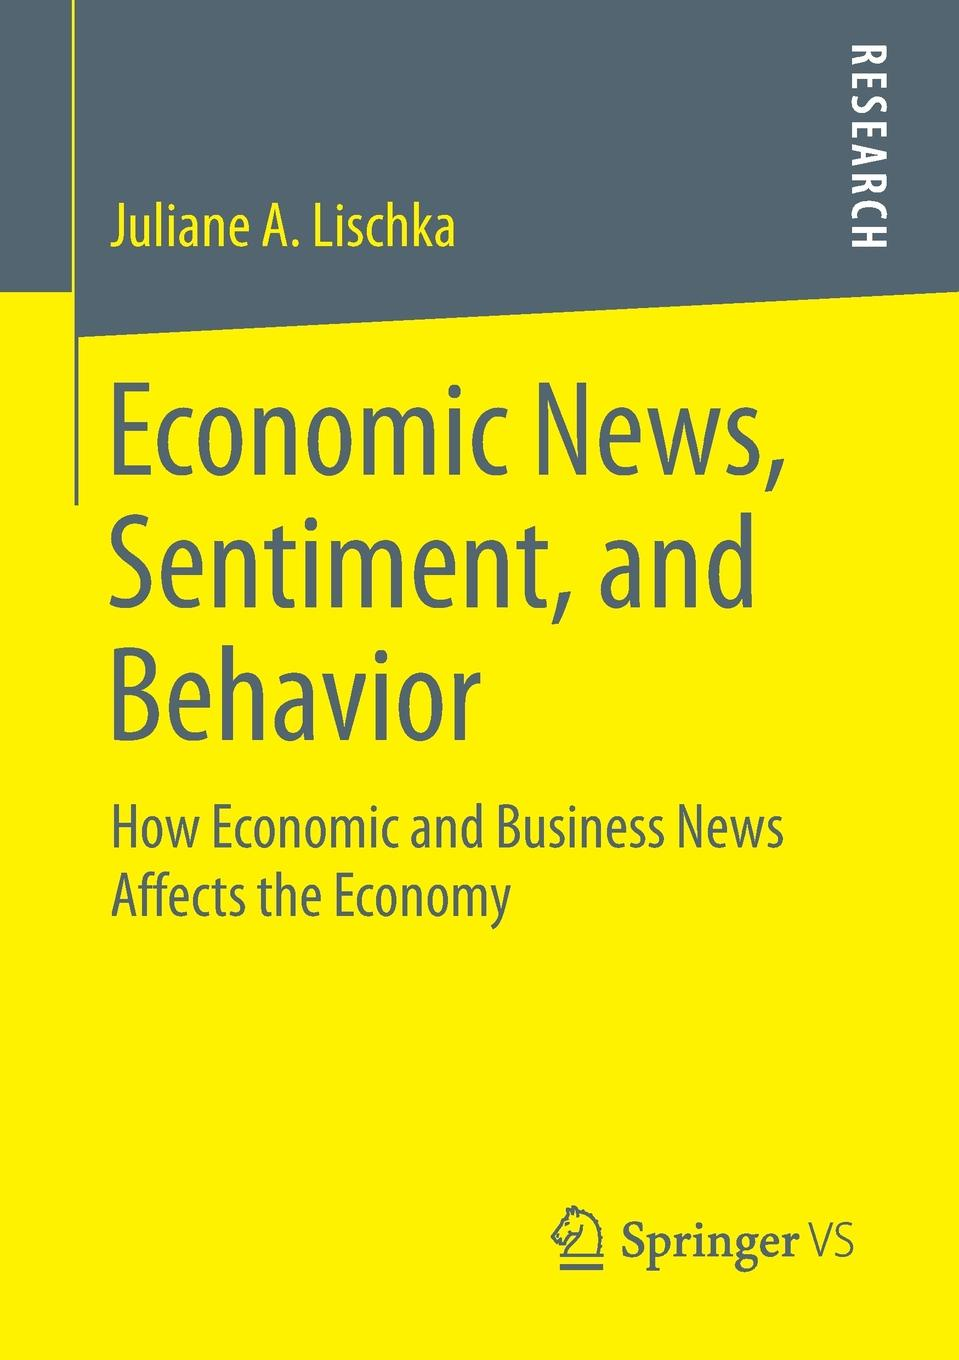 Juliane A. Lischka Economic News, Sentiment, and Behavior. How Economic and Business News Affects the Economy news